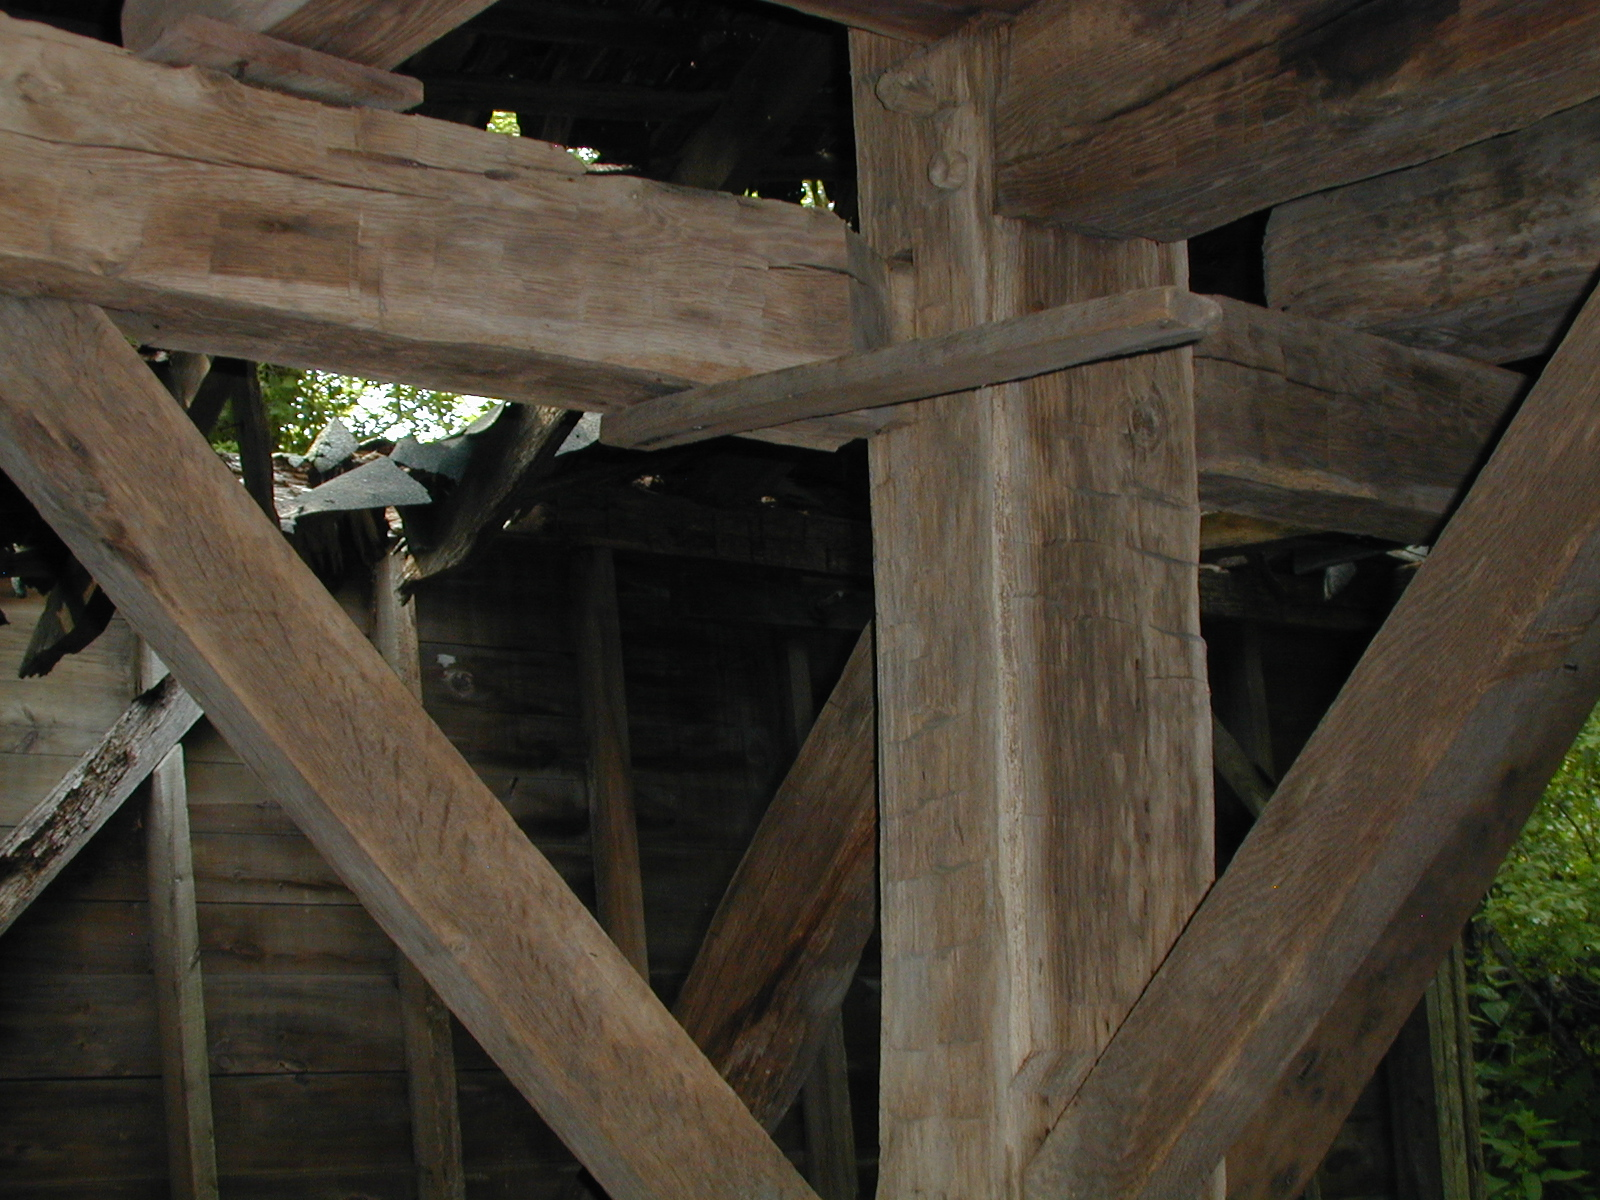 Third unknown house, third barn interior